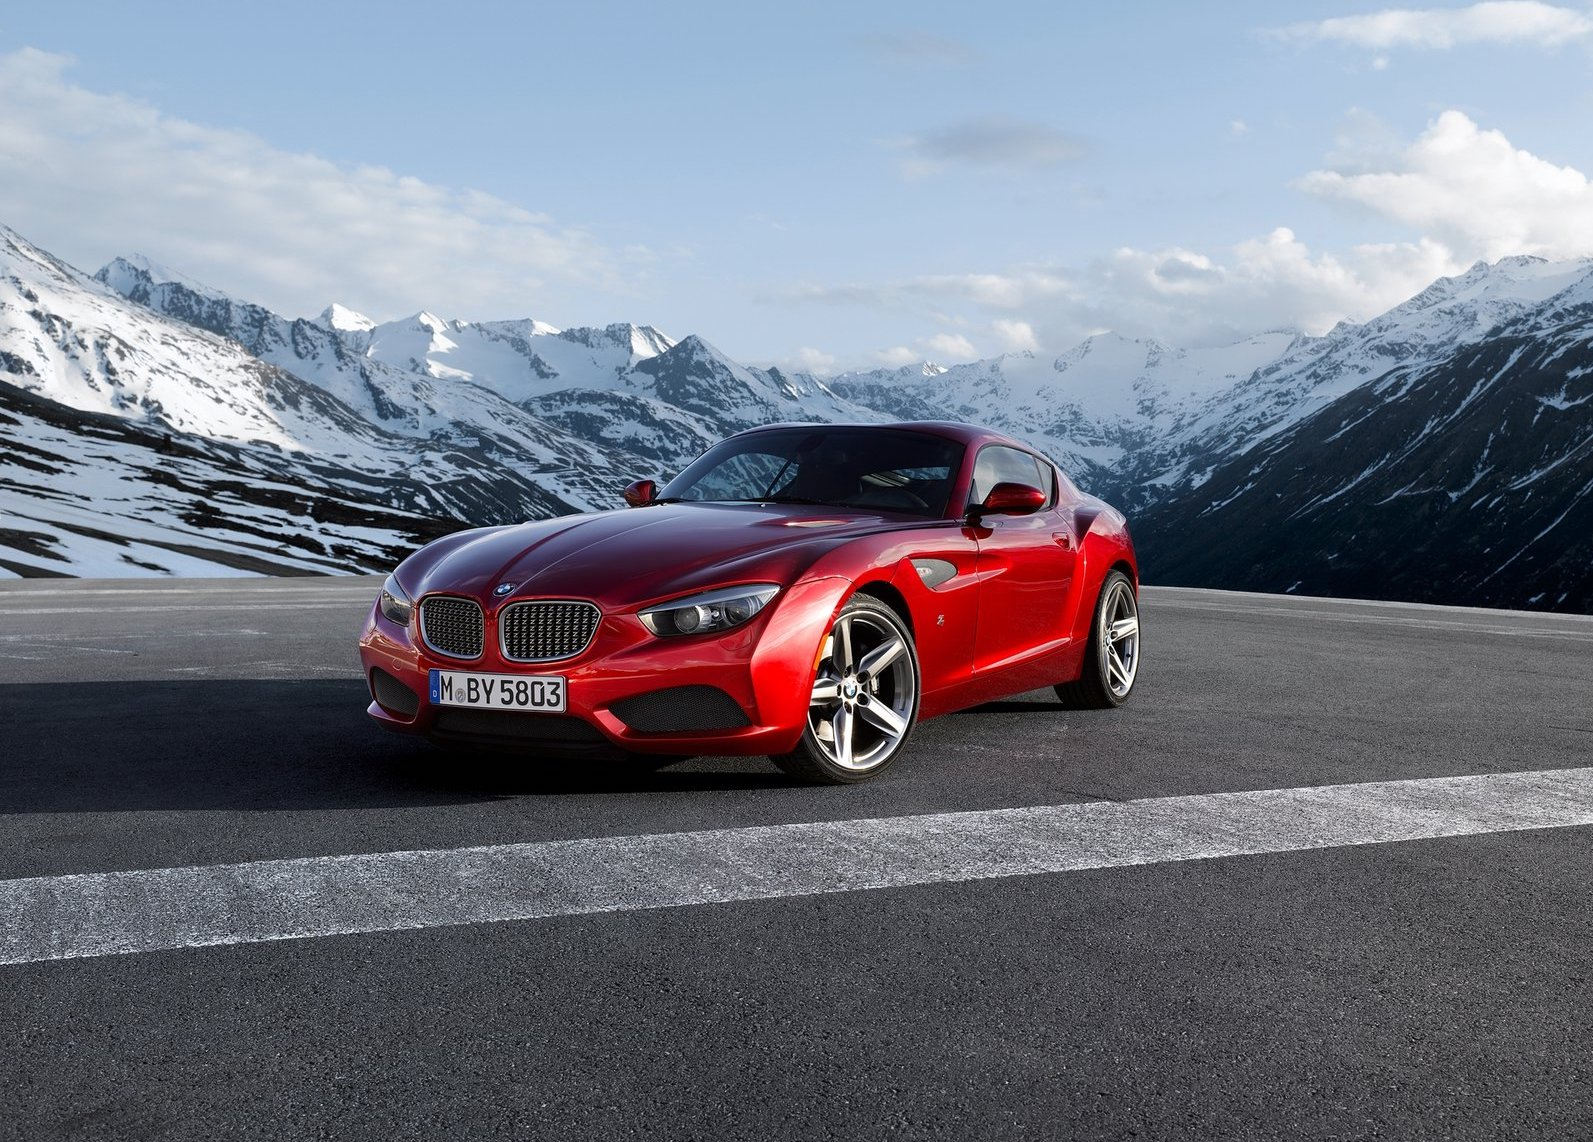 2012 BMW Zagato Coupe 3/4 front runway mountains